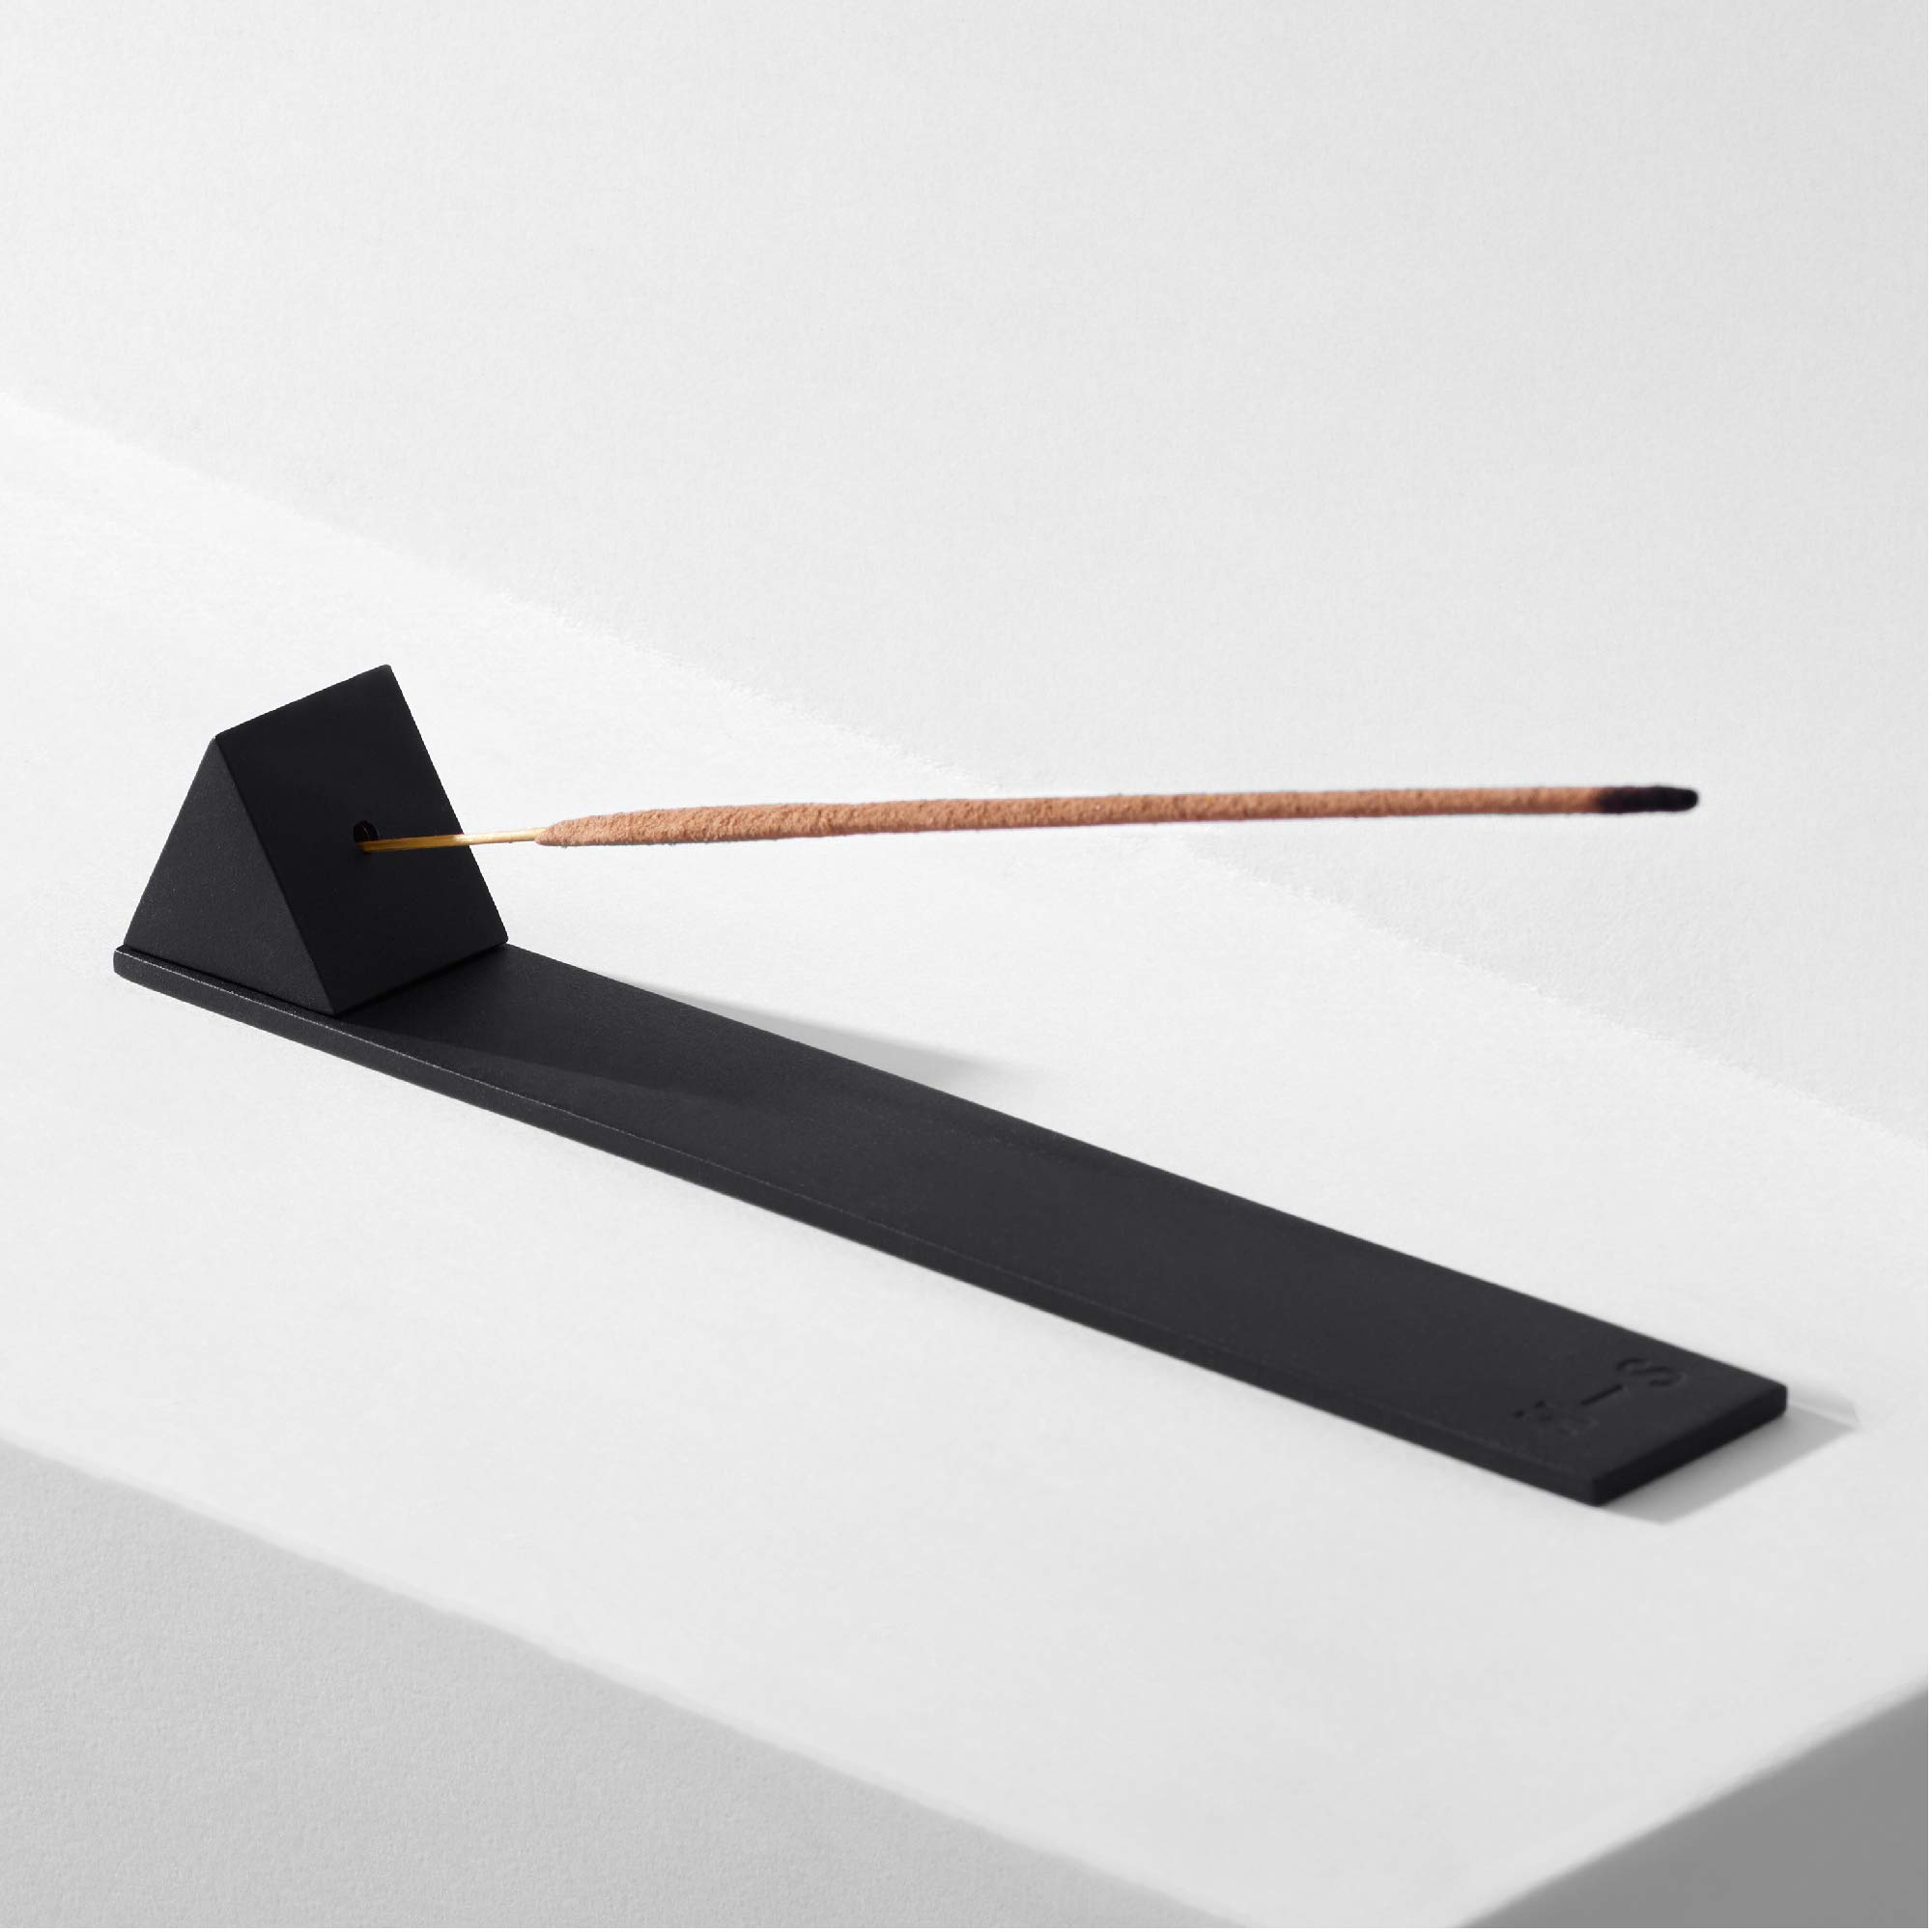 HABITUAL STORE Incense Burner Holder and Tray, Modern Prism Design, Matte Black - Metal Incense Burning Set with Ash Catcher for Sticks - Stylish Meditation and Yoga Accessories, Gift Set for Women